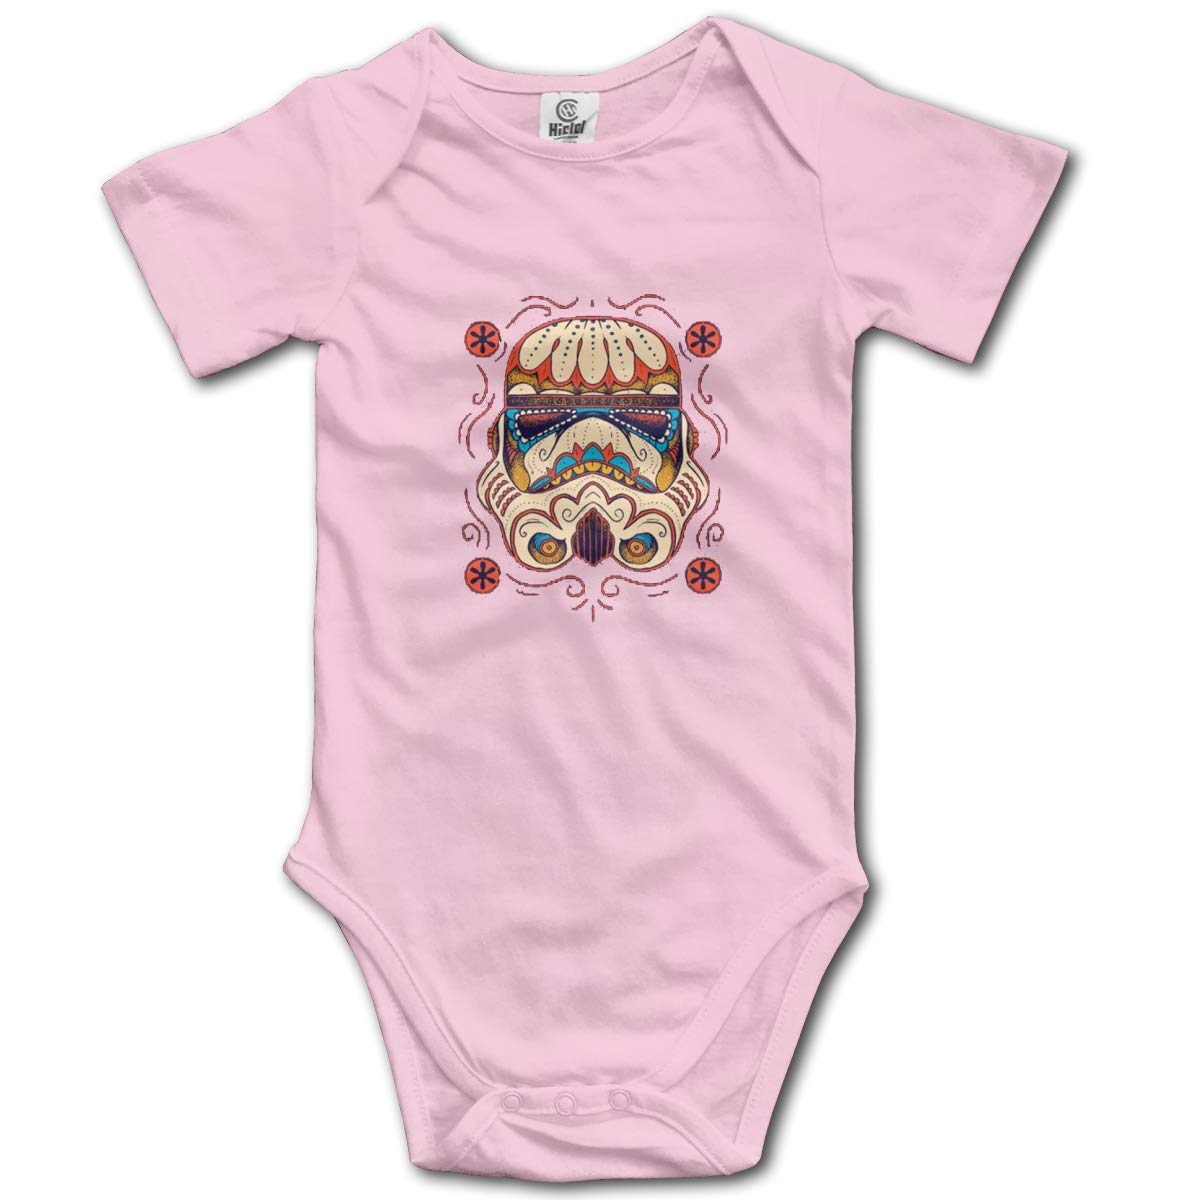 Bodysuits Clothes Onesies Jumpsuits Outfits Black Sugar Skull Navy Baby Pajamas